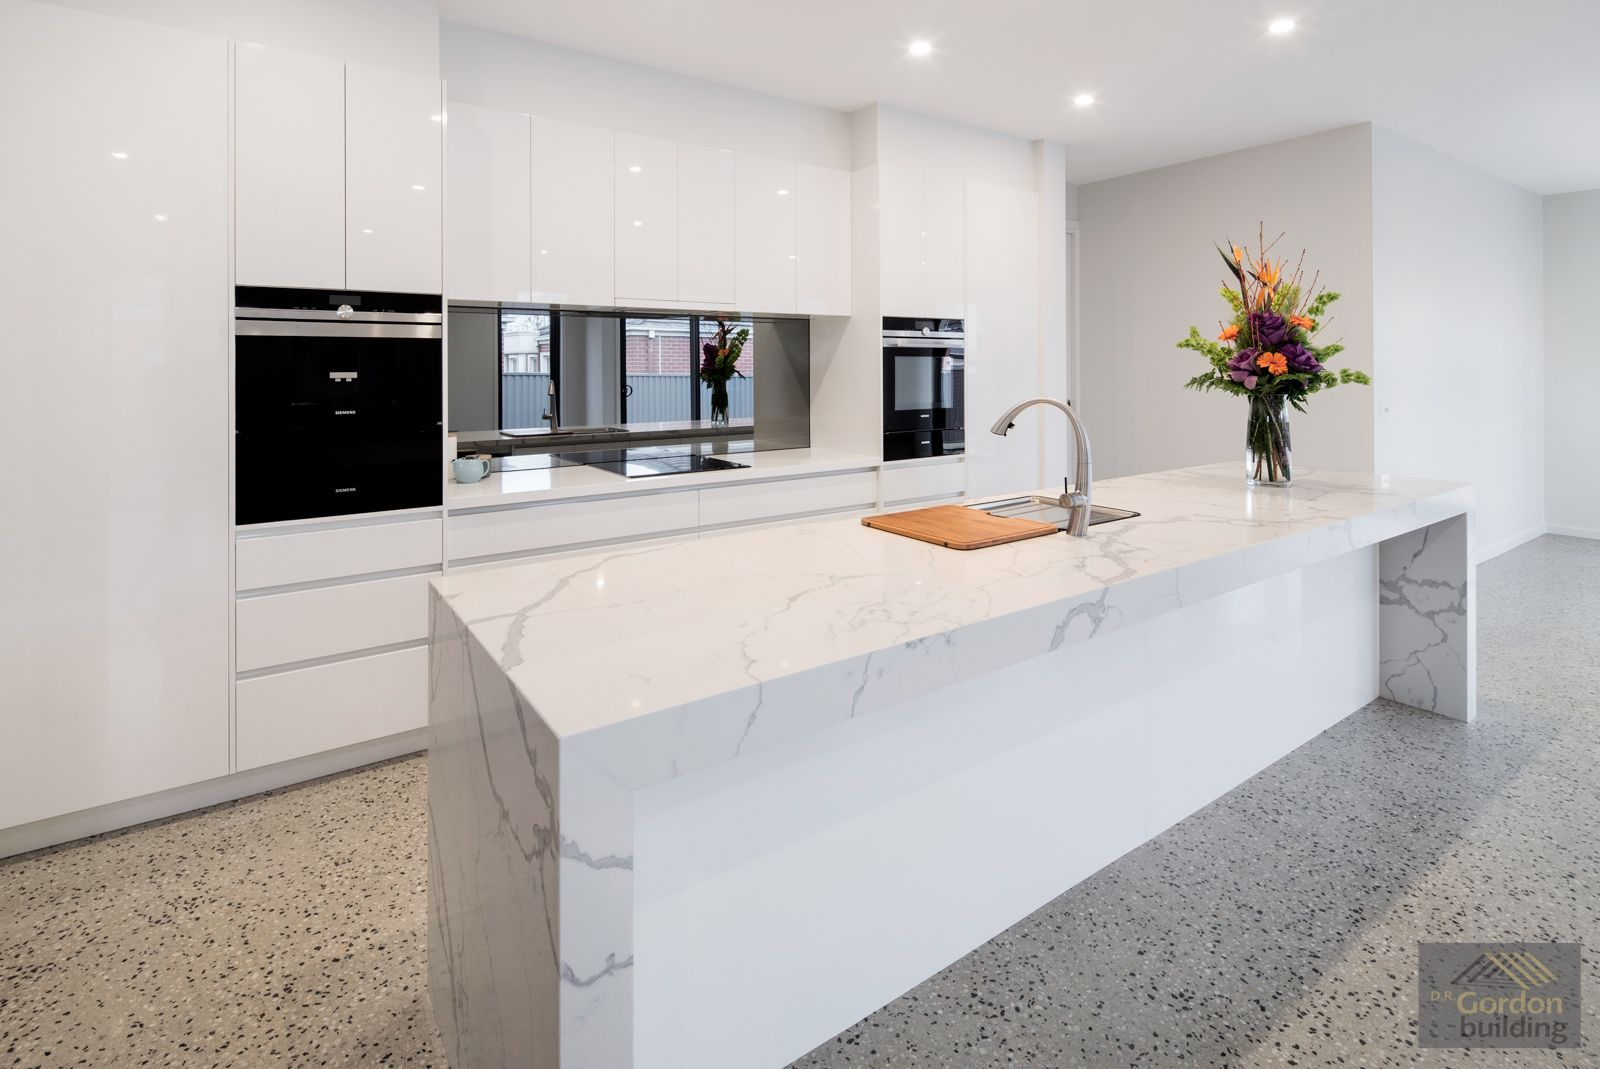 White Gloss Cabinets Marble Island Bench Smoked Mirror